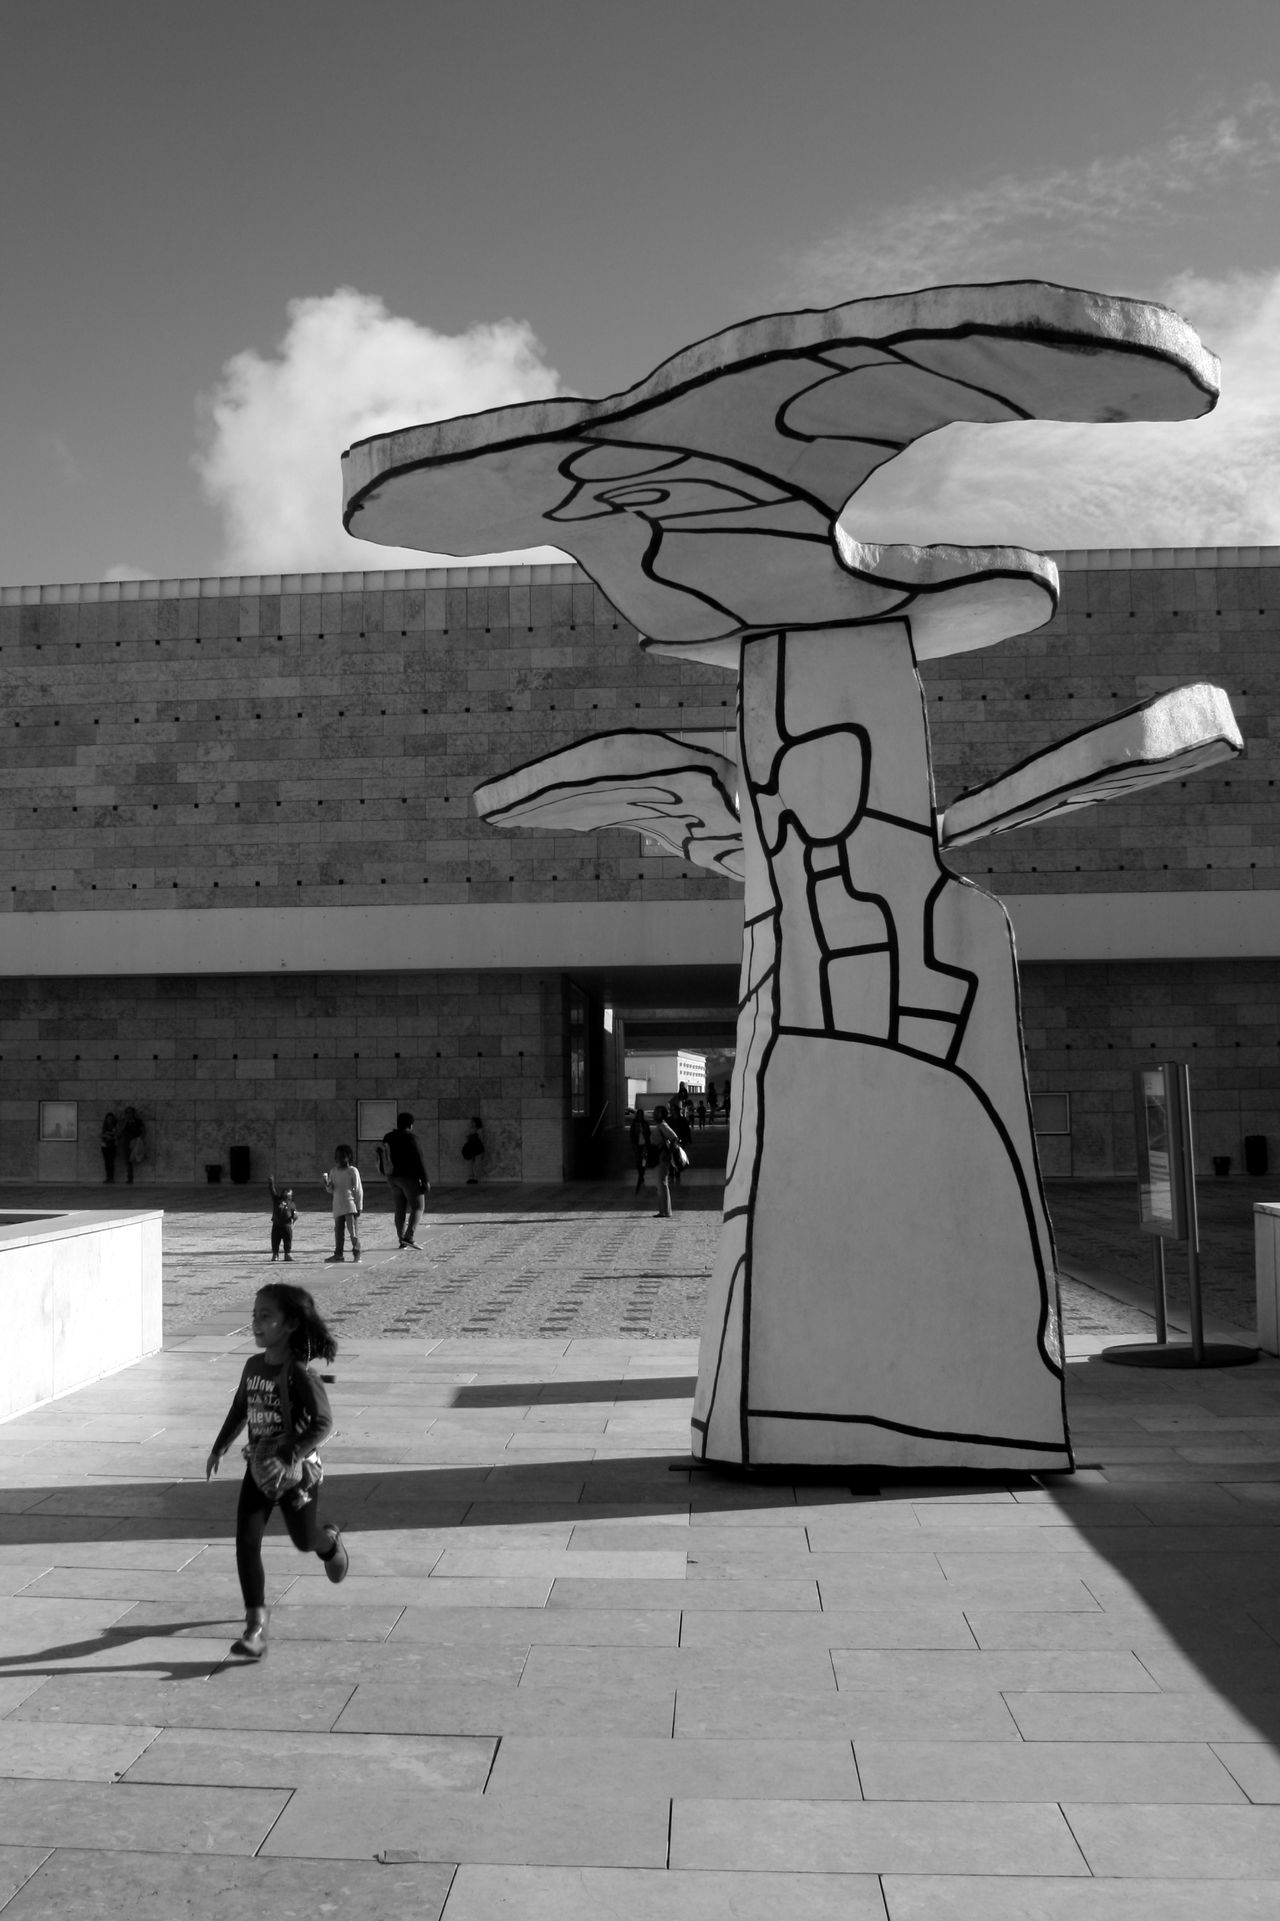 Architecture Art Building Exterior Built Structure City Day Dubuffet Full Length Lifestyles Lisbon Men One Person Outdoors People Real People Sculpture Sky